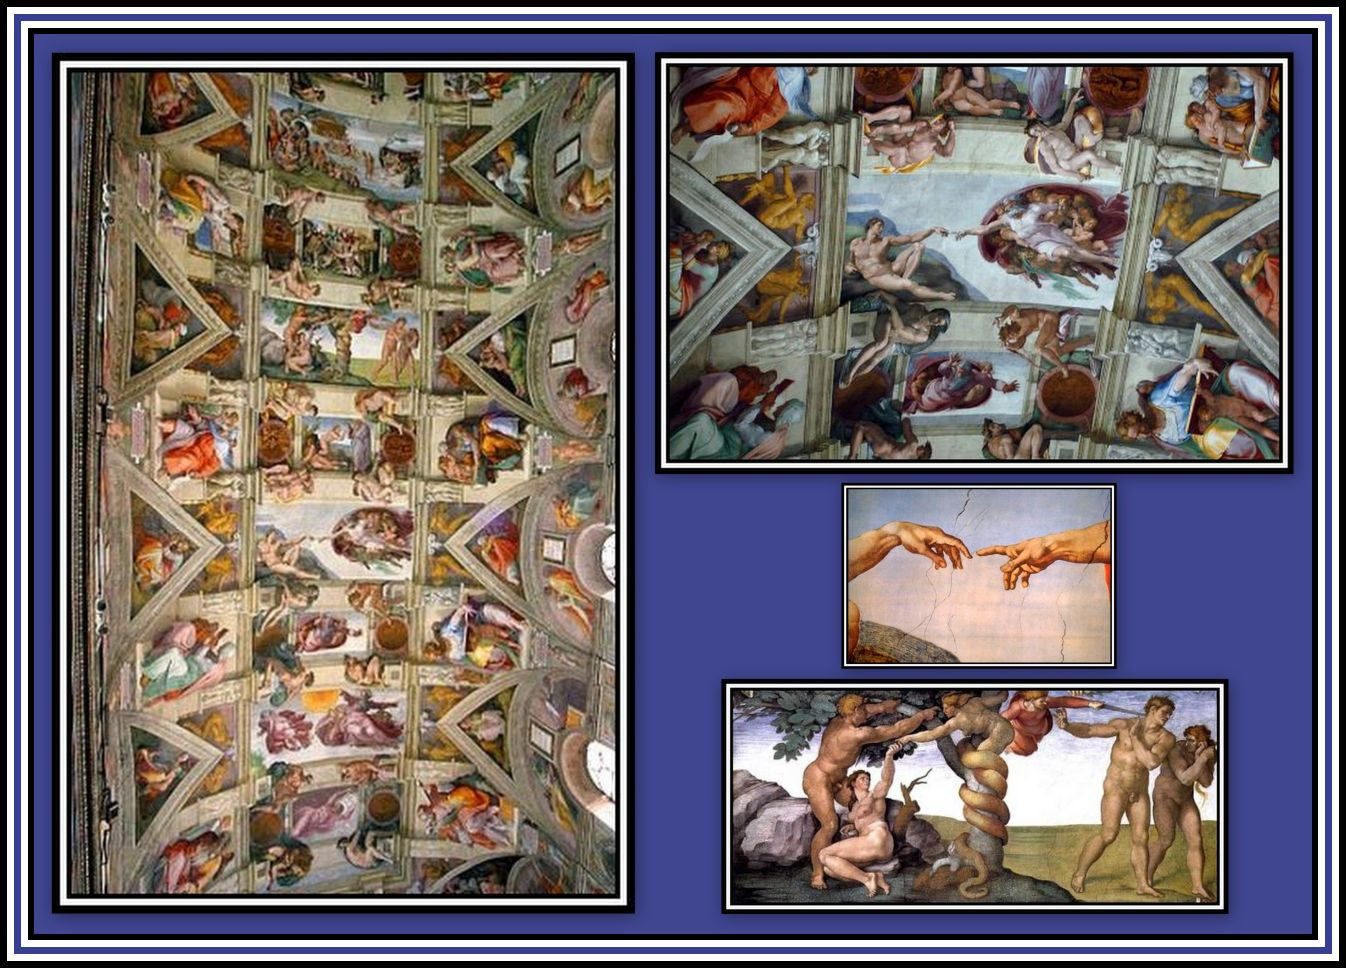 The Sistine Chapel Collage